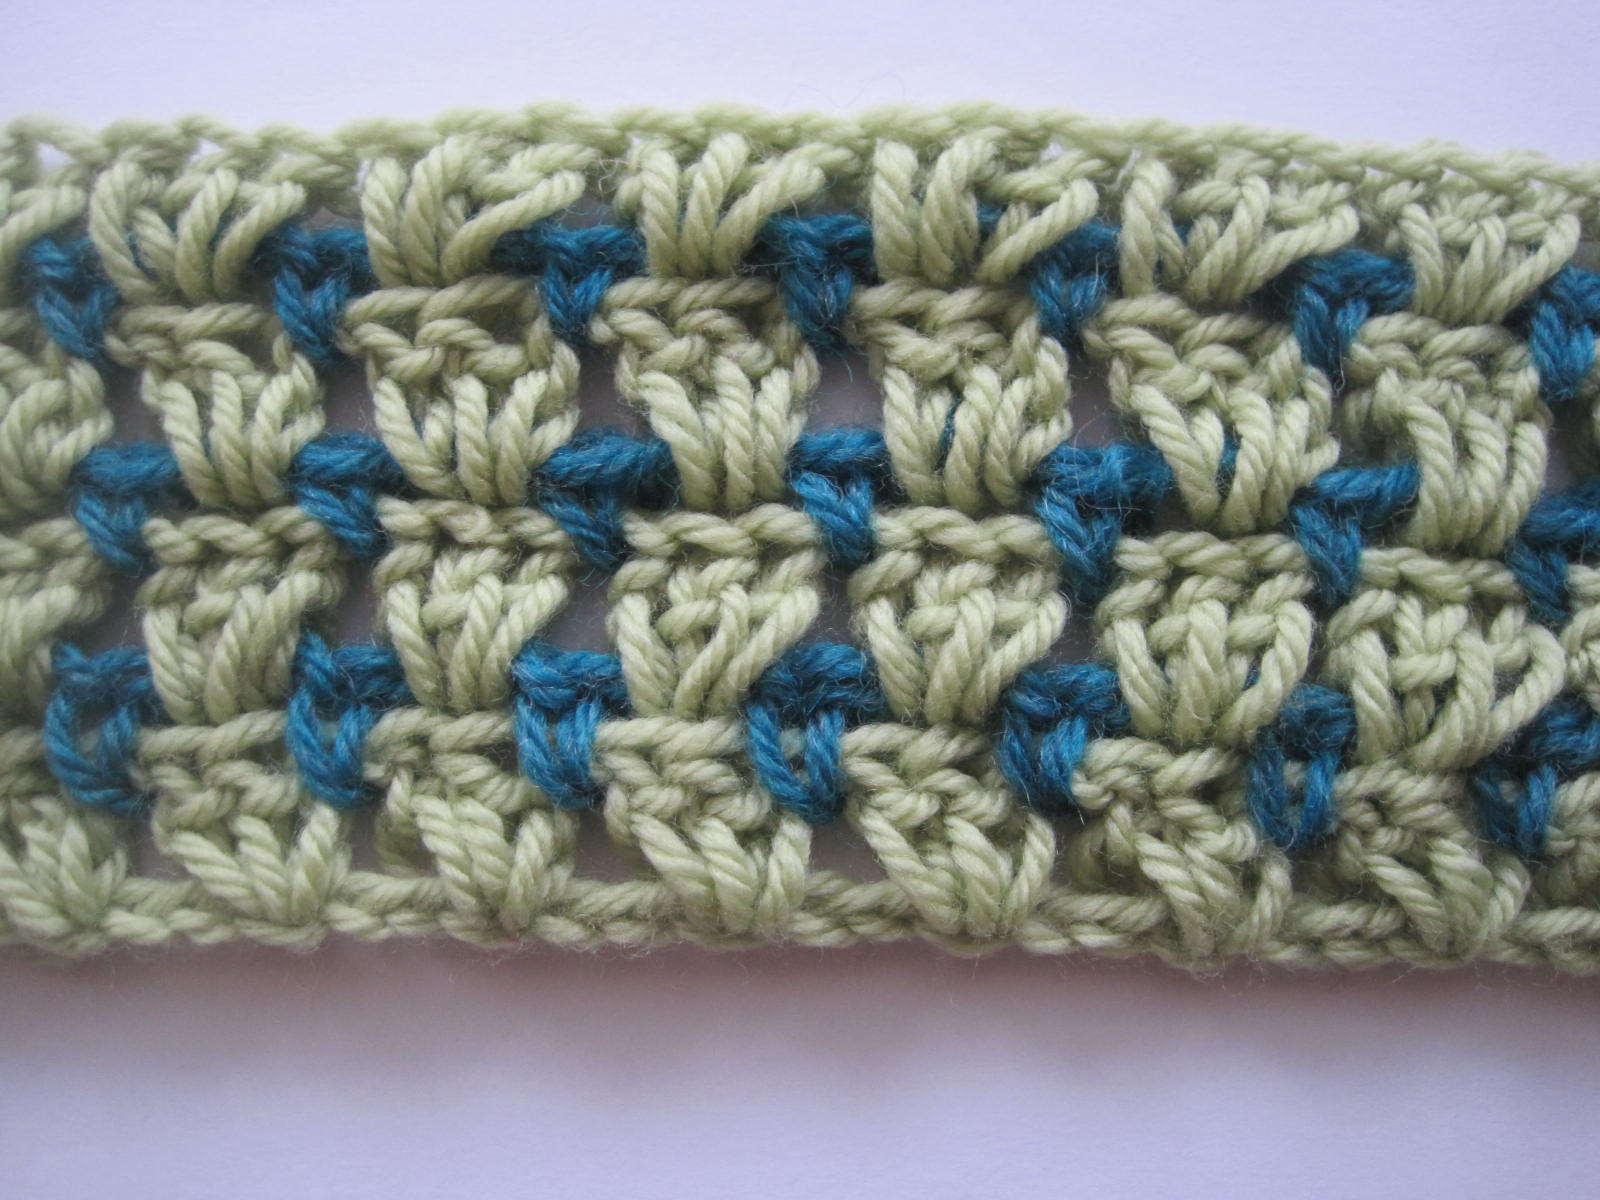 Crochet Spot ? Blog Archive ? How to Crochet: Multi-Colored Stitches ...